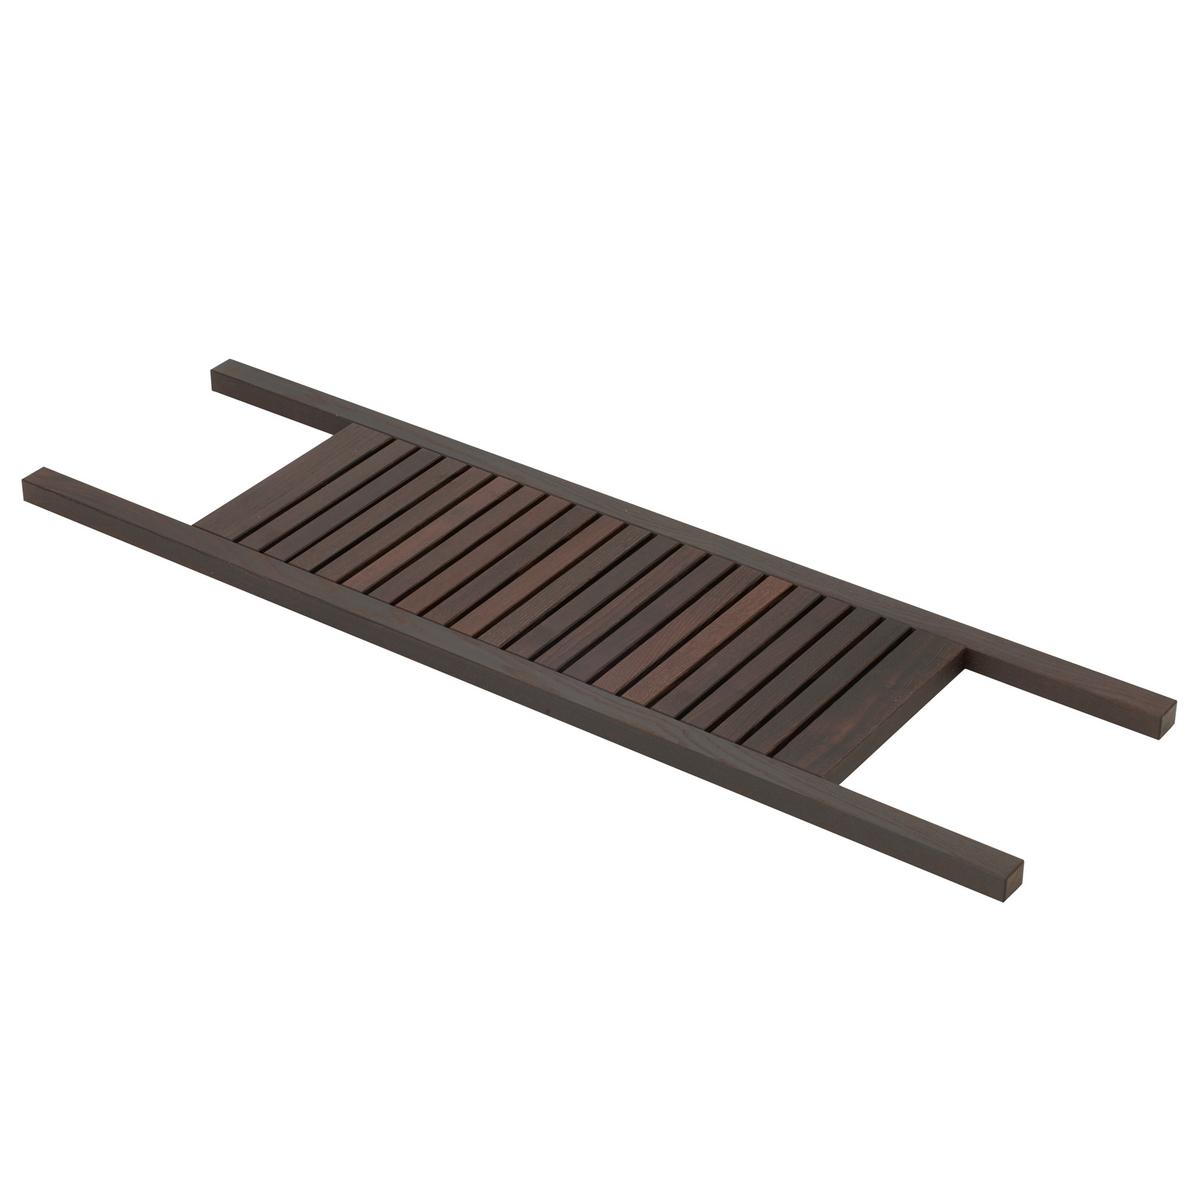 Decor walther wood bath trays for Bathroom tray